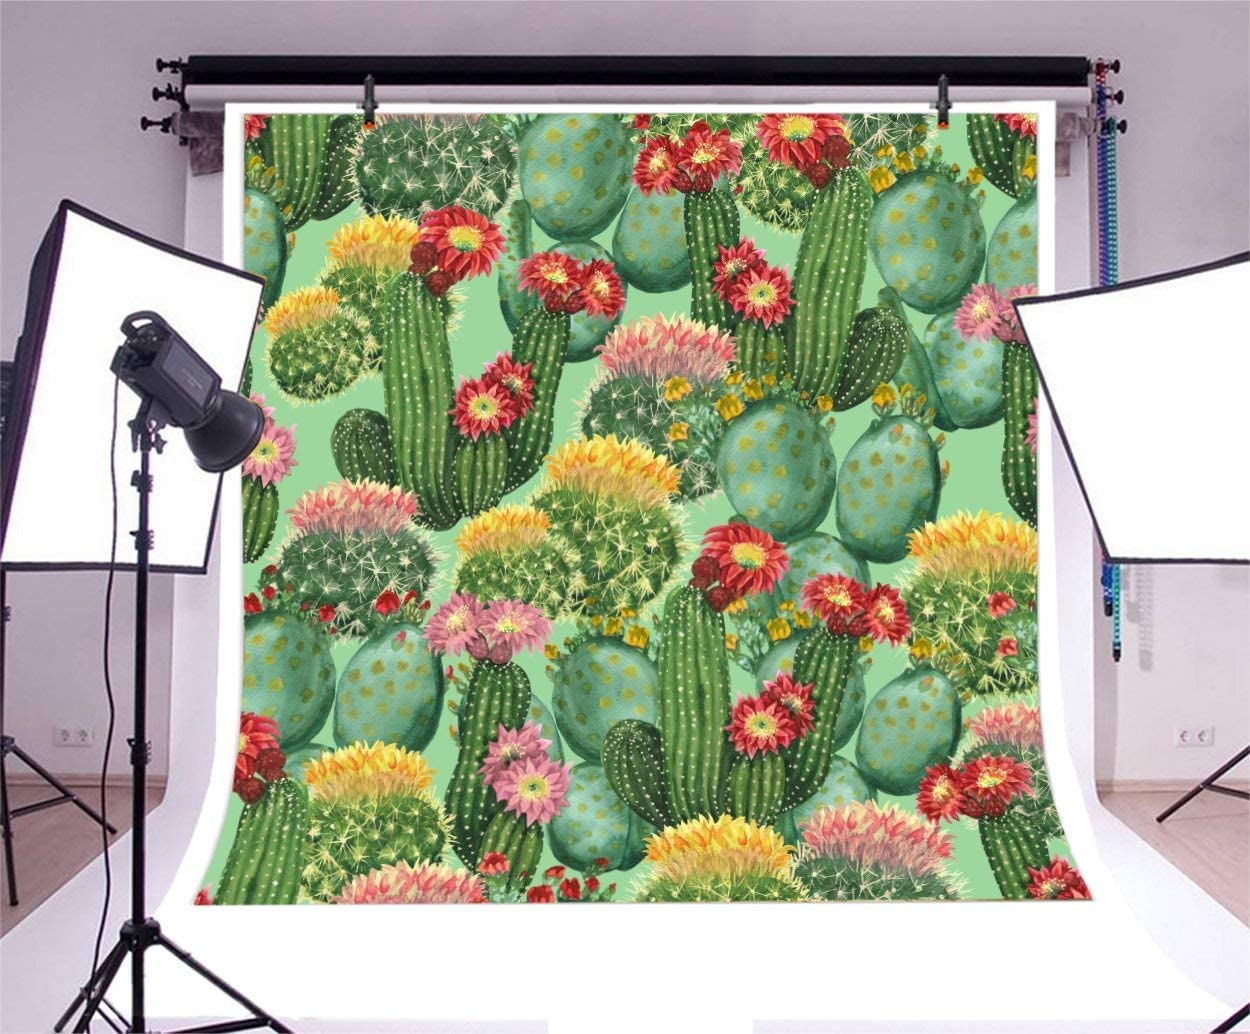 CdHBH 10x10ft Tropical Cactus Pattern Photography Backdrop Natural Evergreen Desert Plants Hand Drawn Botanical Cacti Black Background for Party Videos YouTube Photo Studio Props